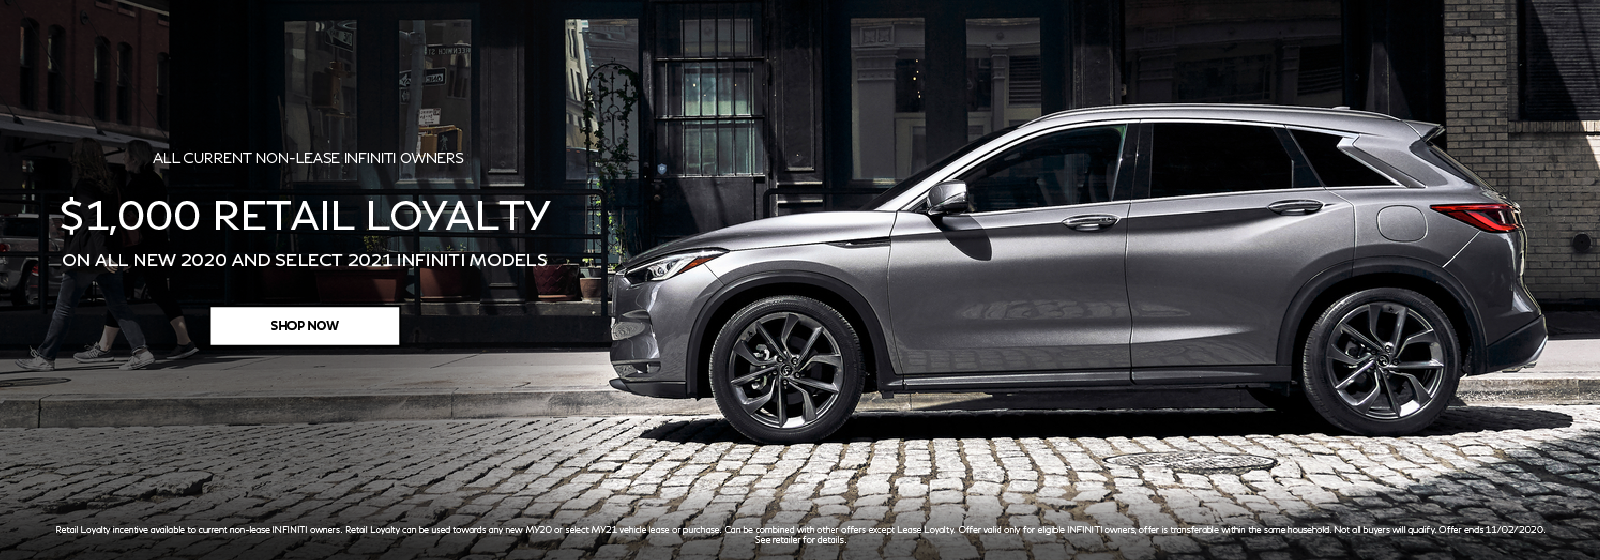 $1,000 Retail Loyalty on all new 2020 and select 2021 INFINITI models. Click to shop now.